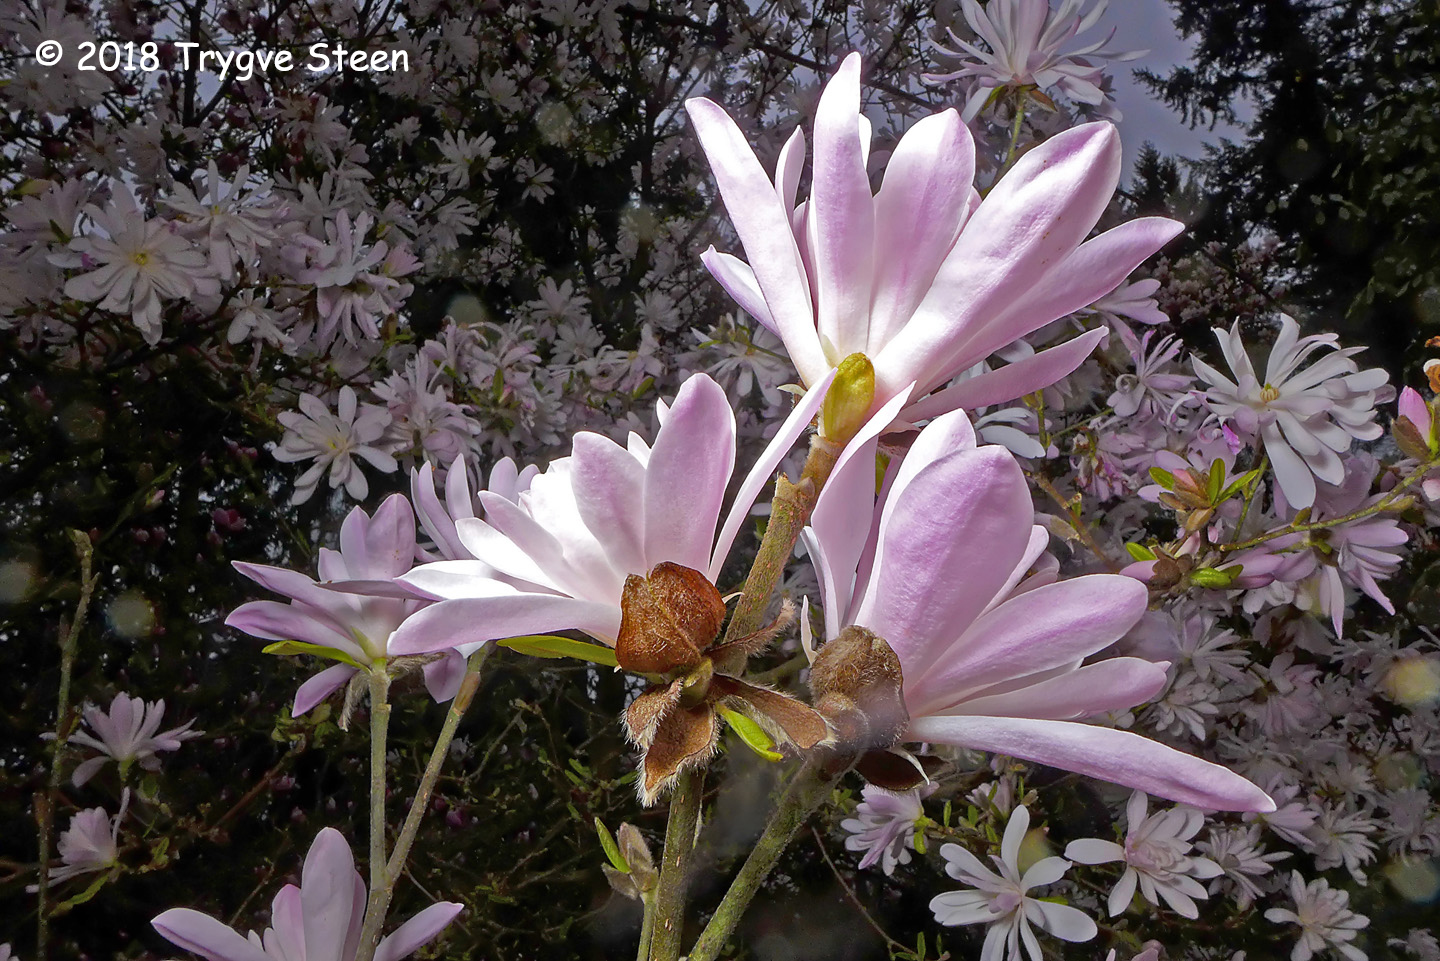 1st Place Plant Life - Rosy Star Magnolia by Trygve Steen